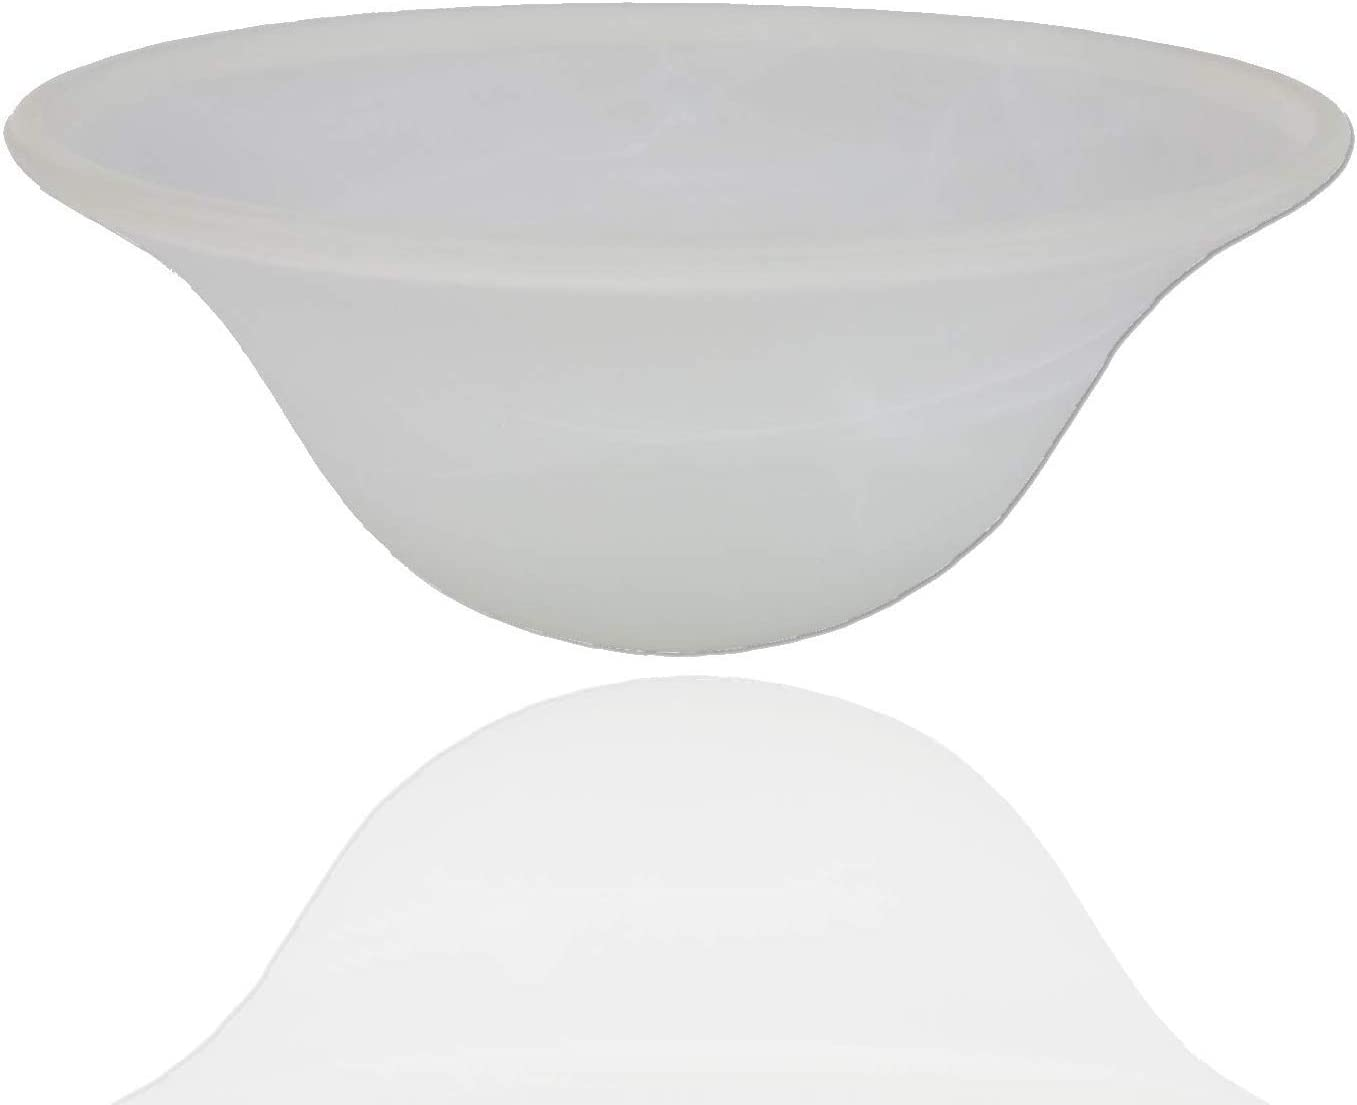 Alabaster White Glass Lamp Shade Replacement for Floor Lamp - Lamp Shade fro Floor Lamps - Glass Lamp Shade - Floor Lamp Shade - Light Fixture Replacement Glass (White Marble)